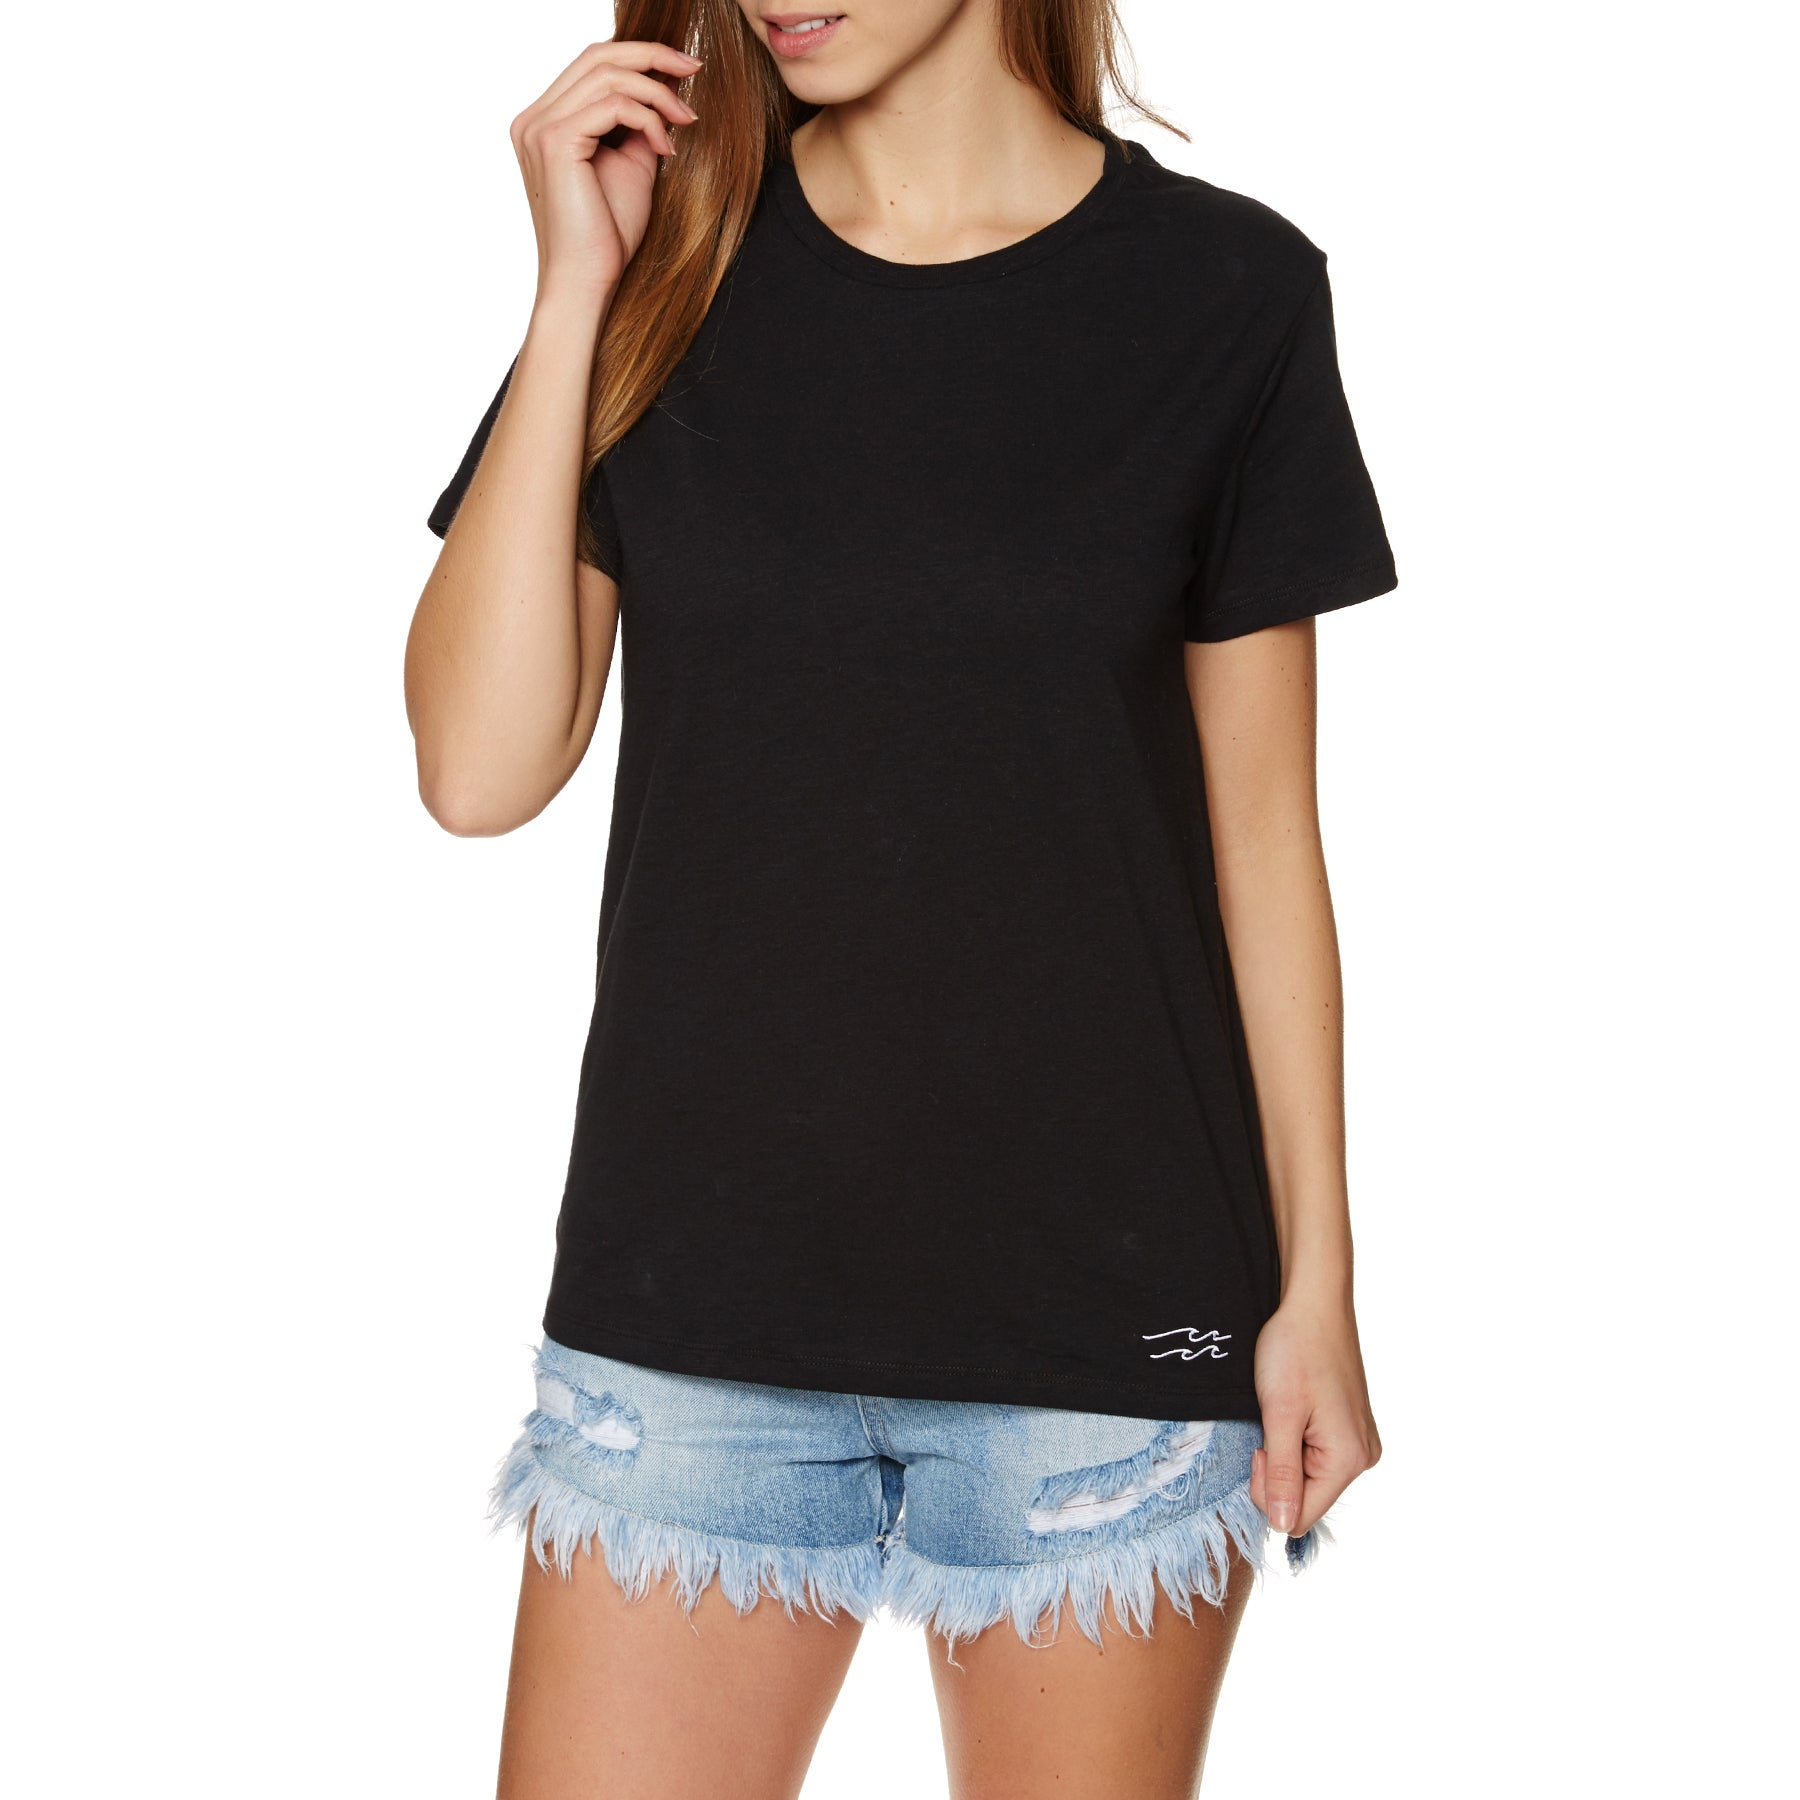 Billabong Essential Womens Short Sleeve T-Shirt - Black